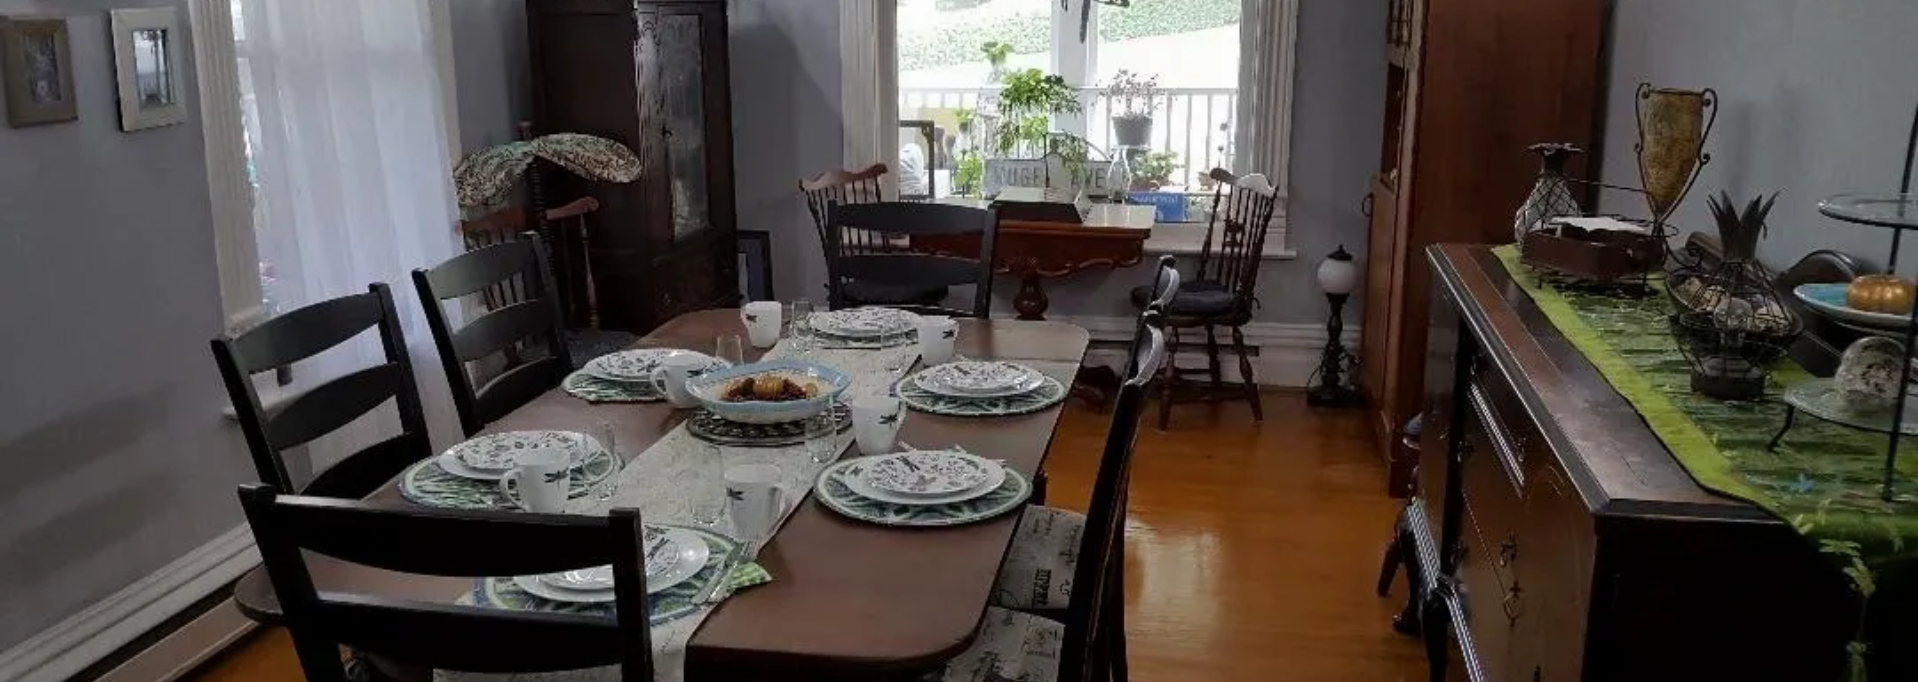 A dining room table at Dragonfly Dreams Inn Bed and Breakfast.